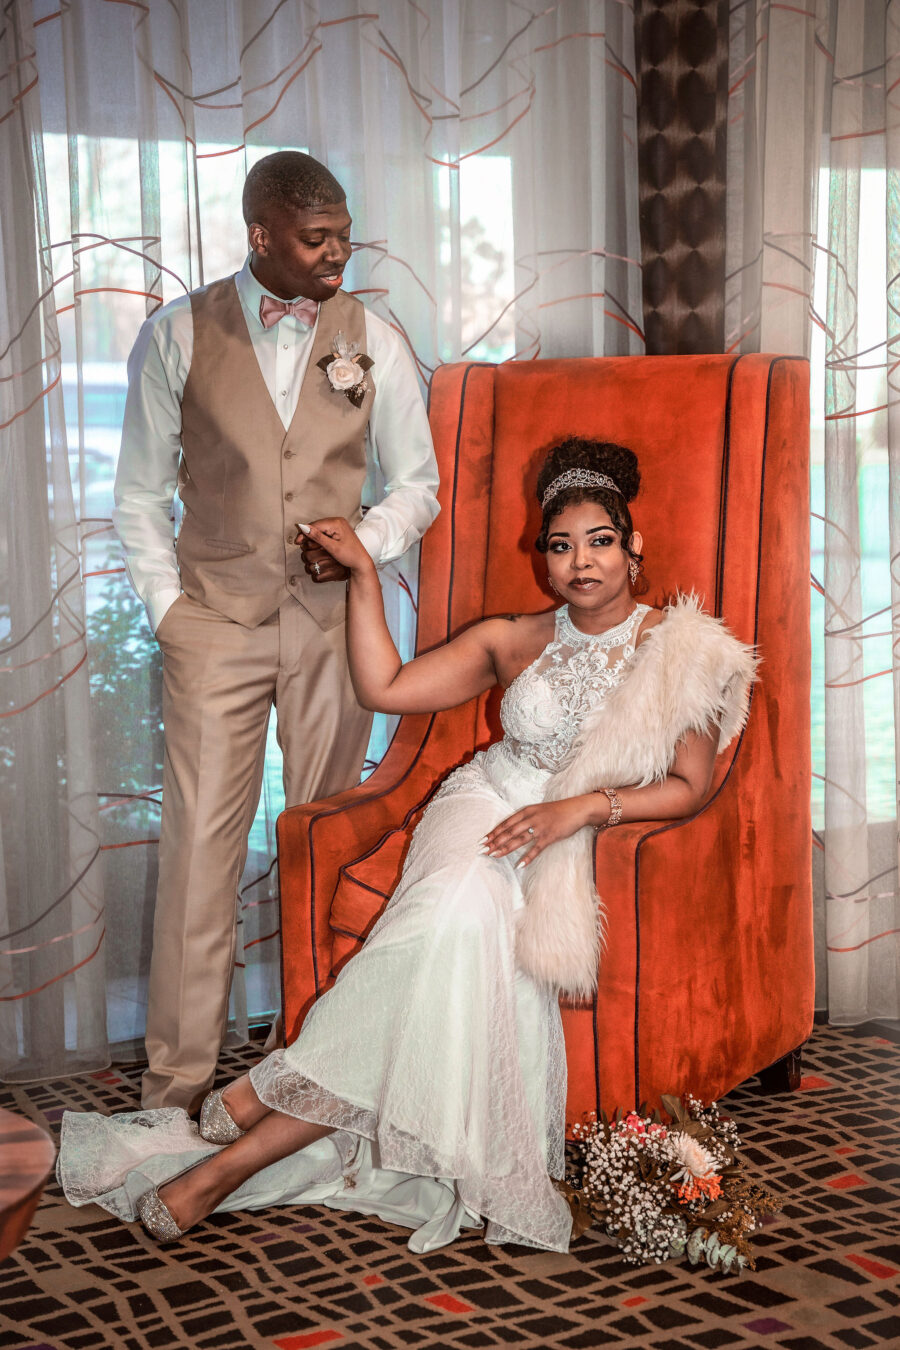 Eclectic Rustic wedding inspiration by My Joyful Event | Nashville Bride Guide